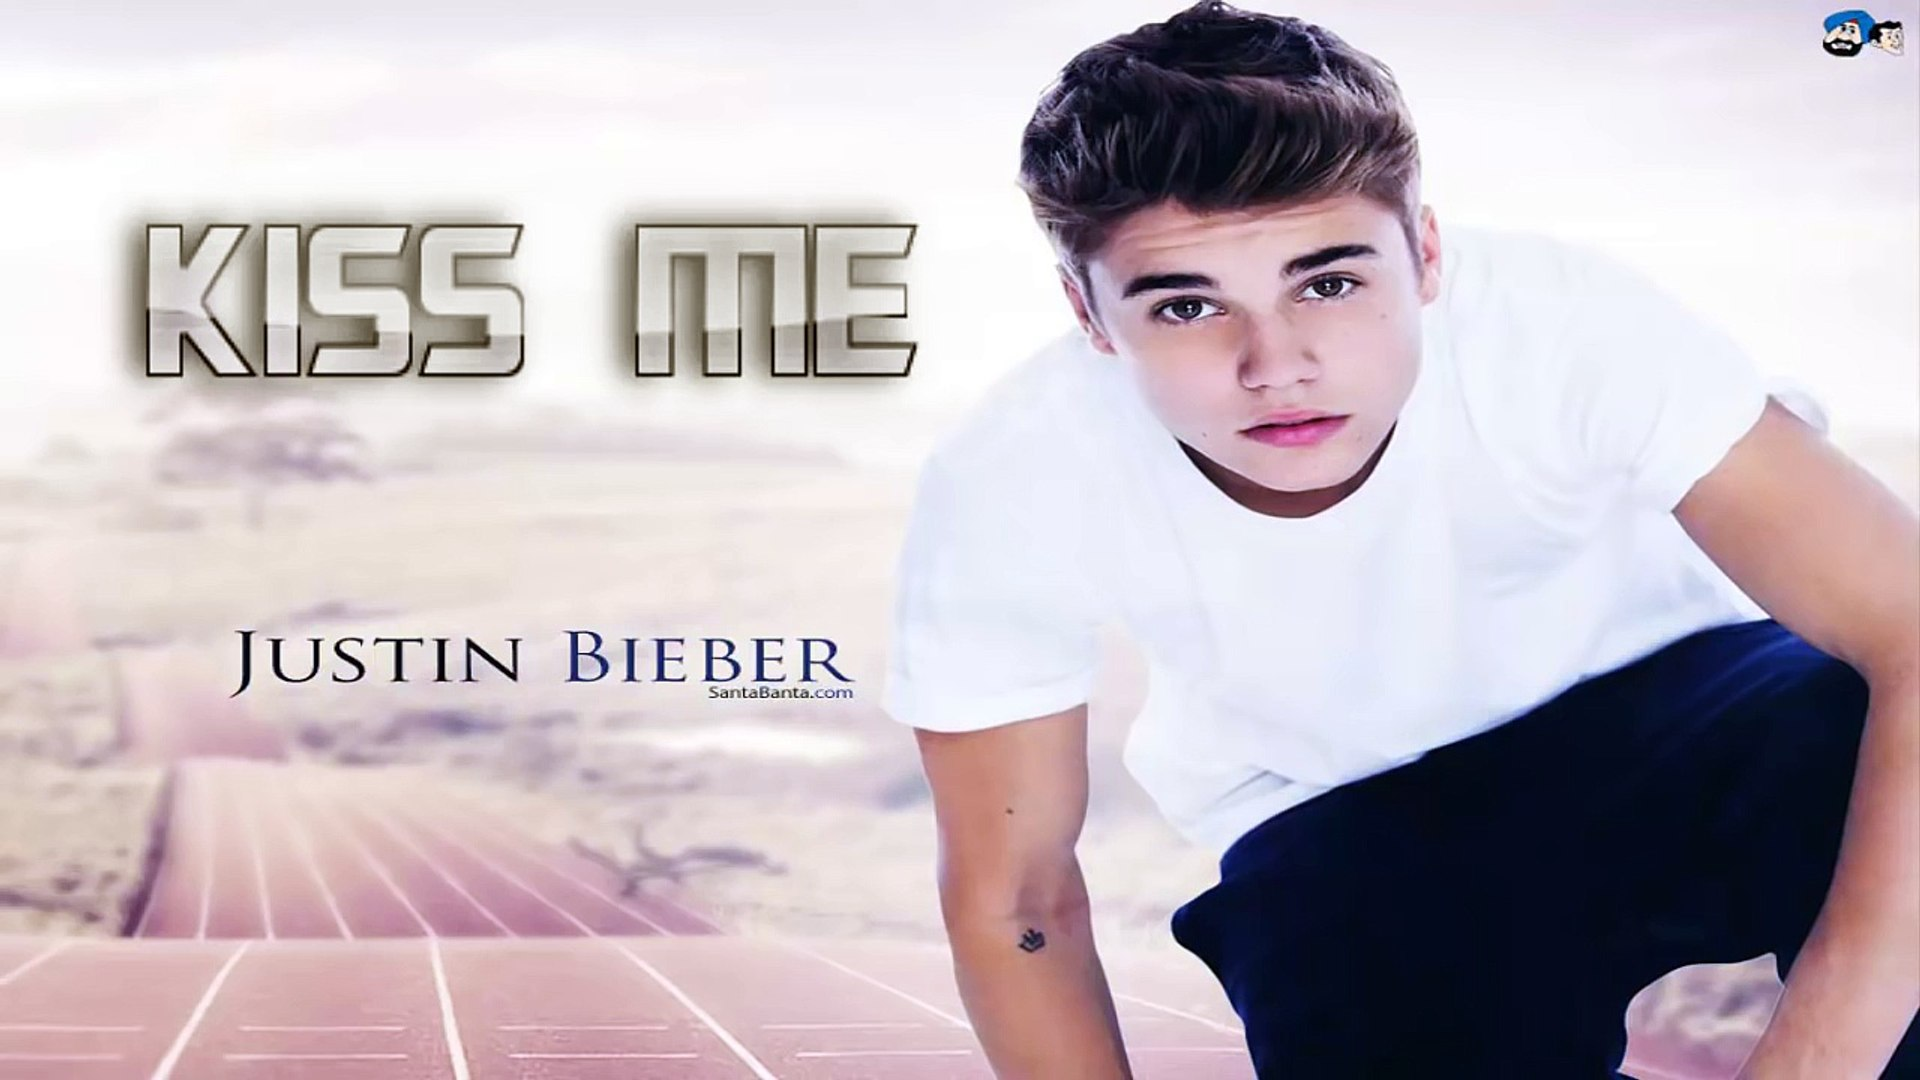 Justin Bieber New Song 2015 - KISS ME [Official Mp3] - Justin Bieber 2015 - NEW SONG 2015